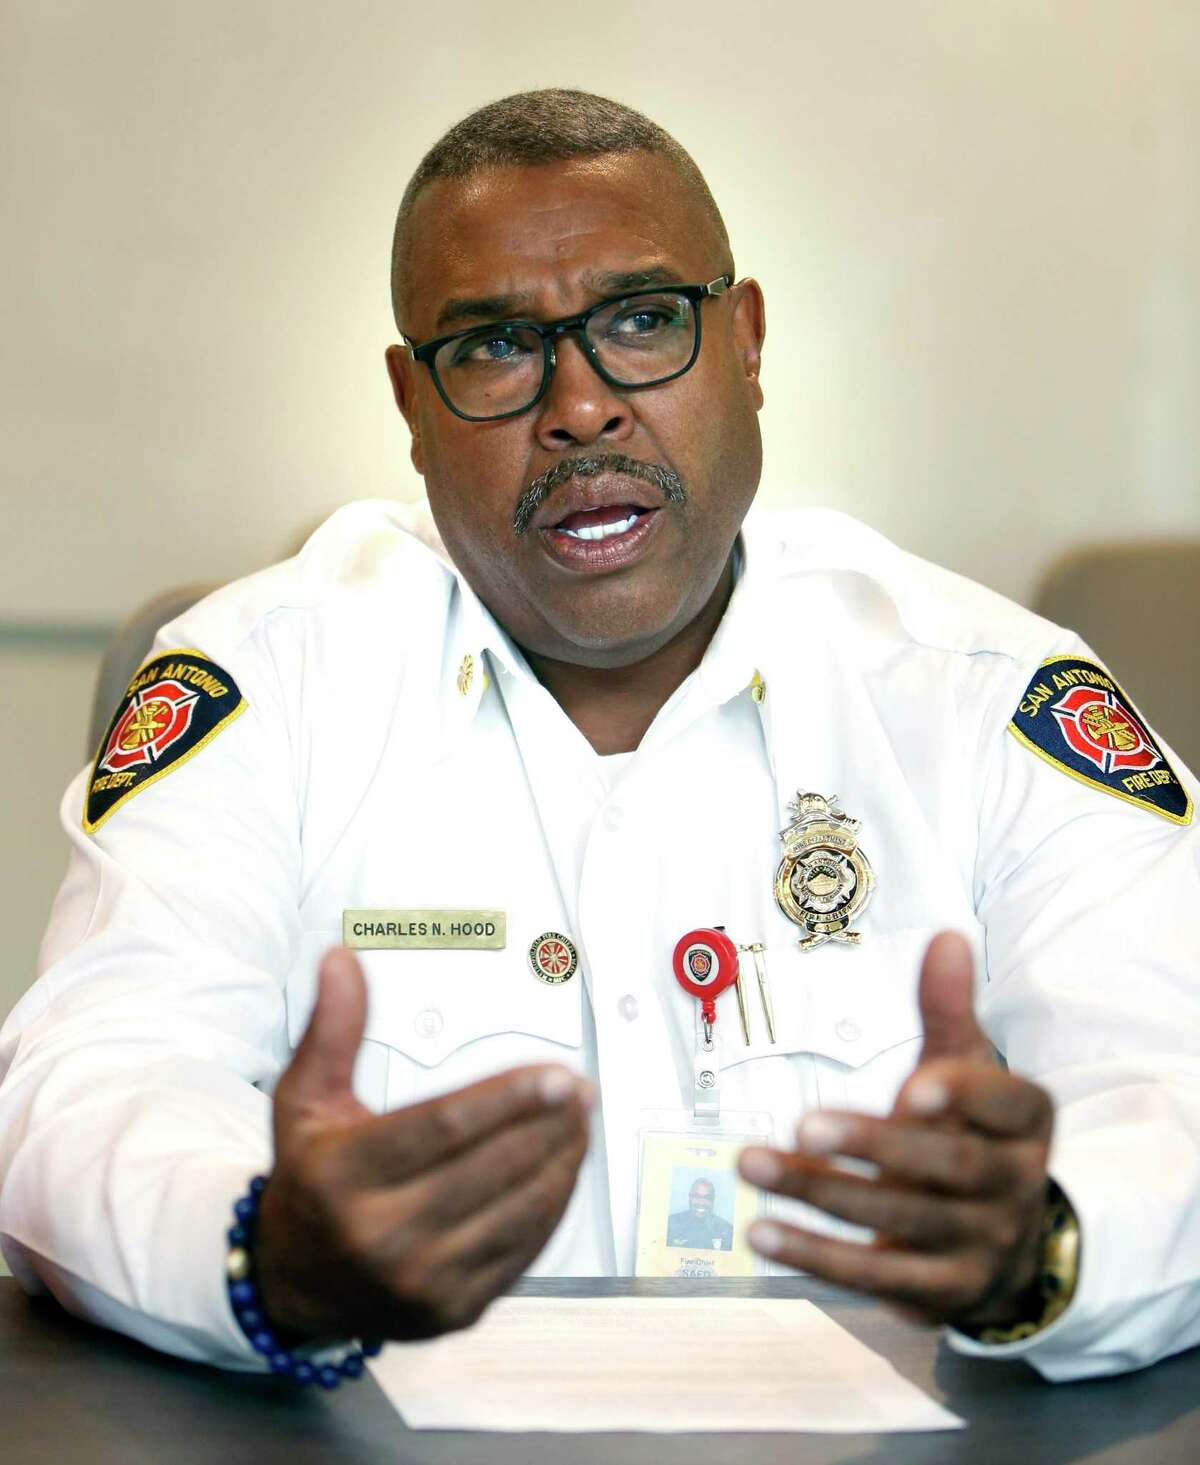 The handling of the arrest last summer of Fire Chief Charles Hood's son also raises questions about the criminal justice system.